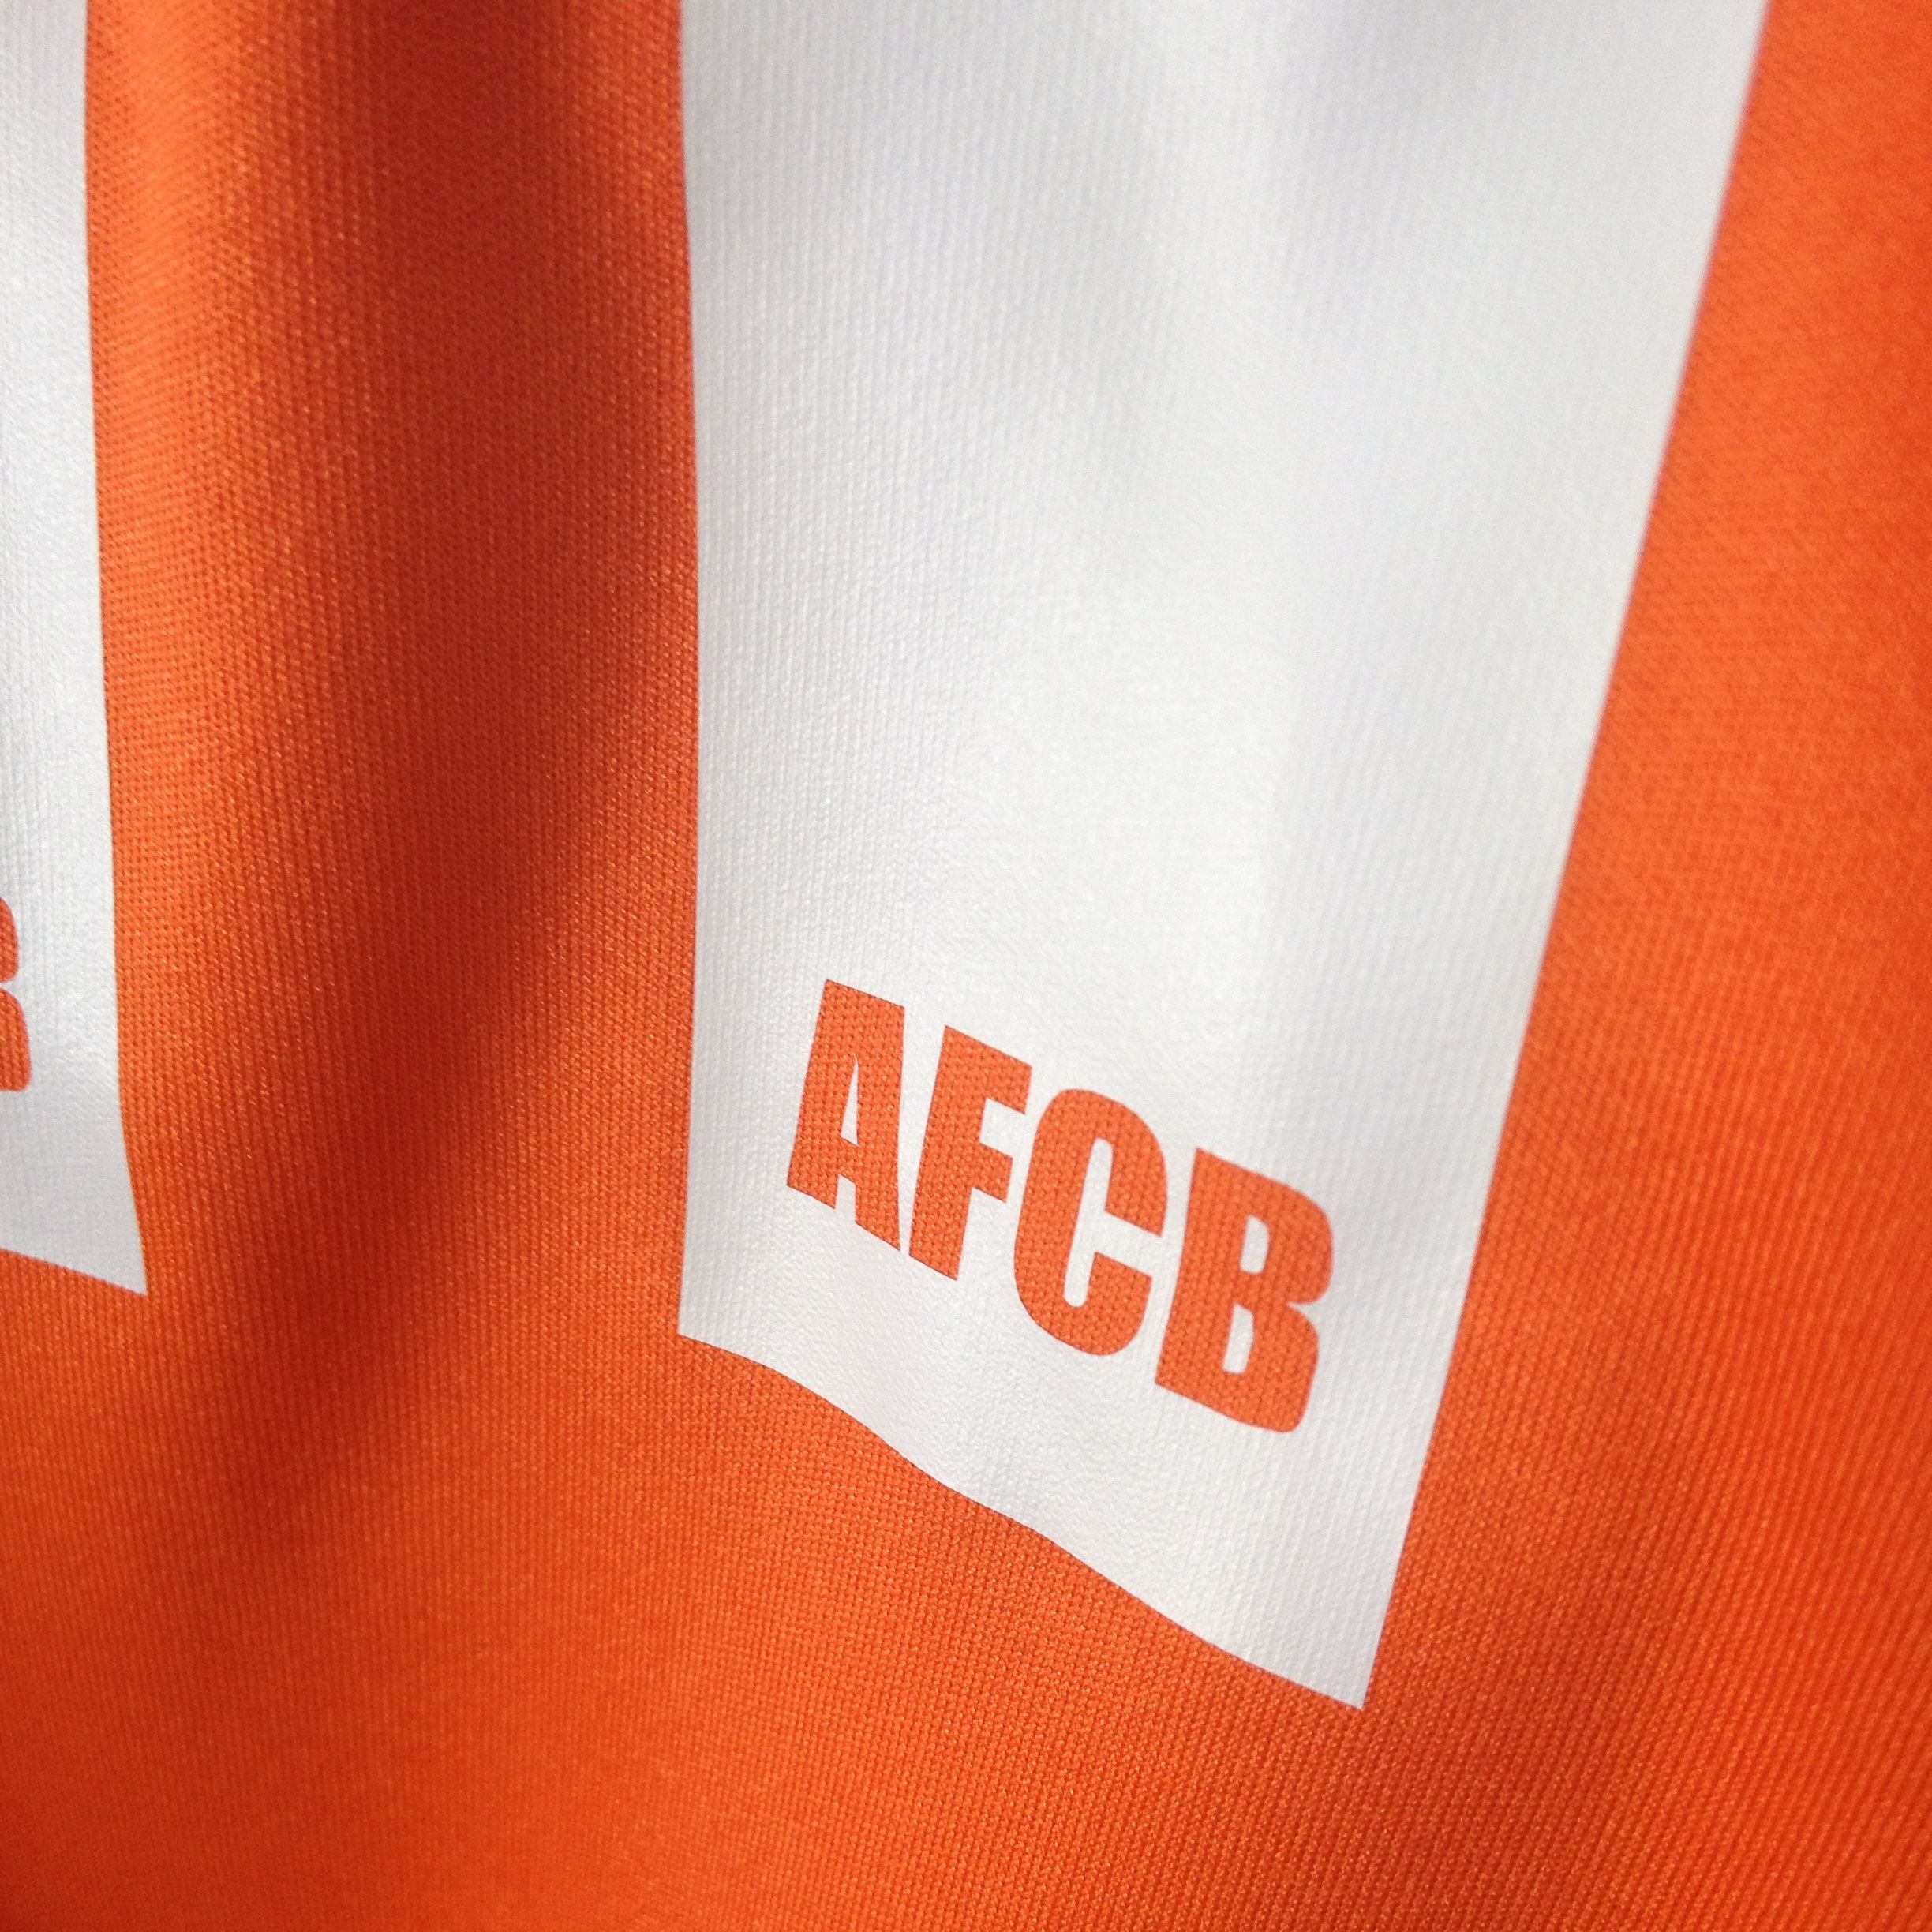 Exciting AFC Burton! #ComingSoon #NewKit #AFCBurton #MediaLoungeLife #KitSponsorship #AttentionToDetail